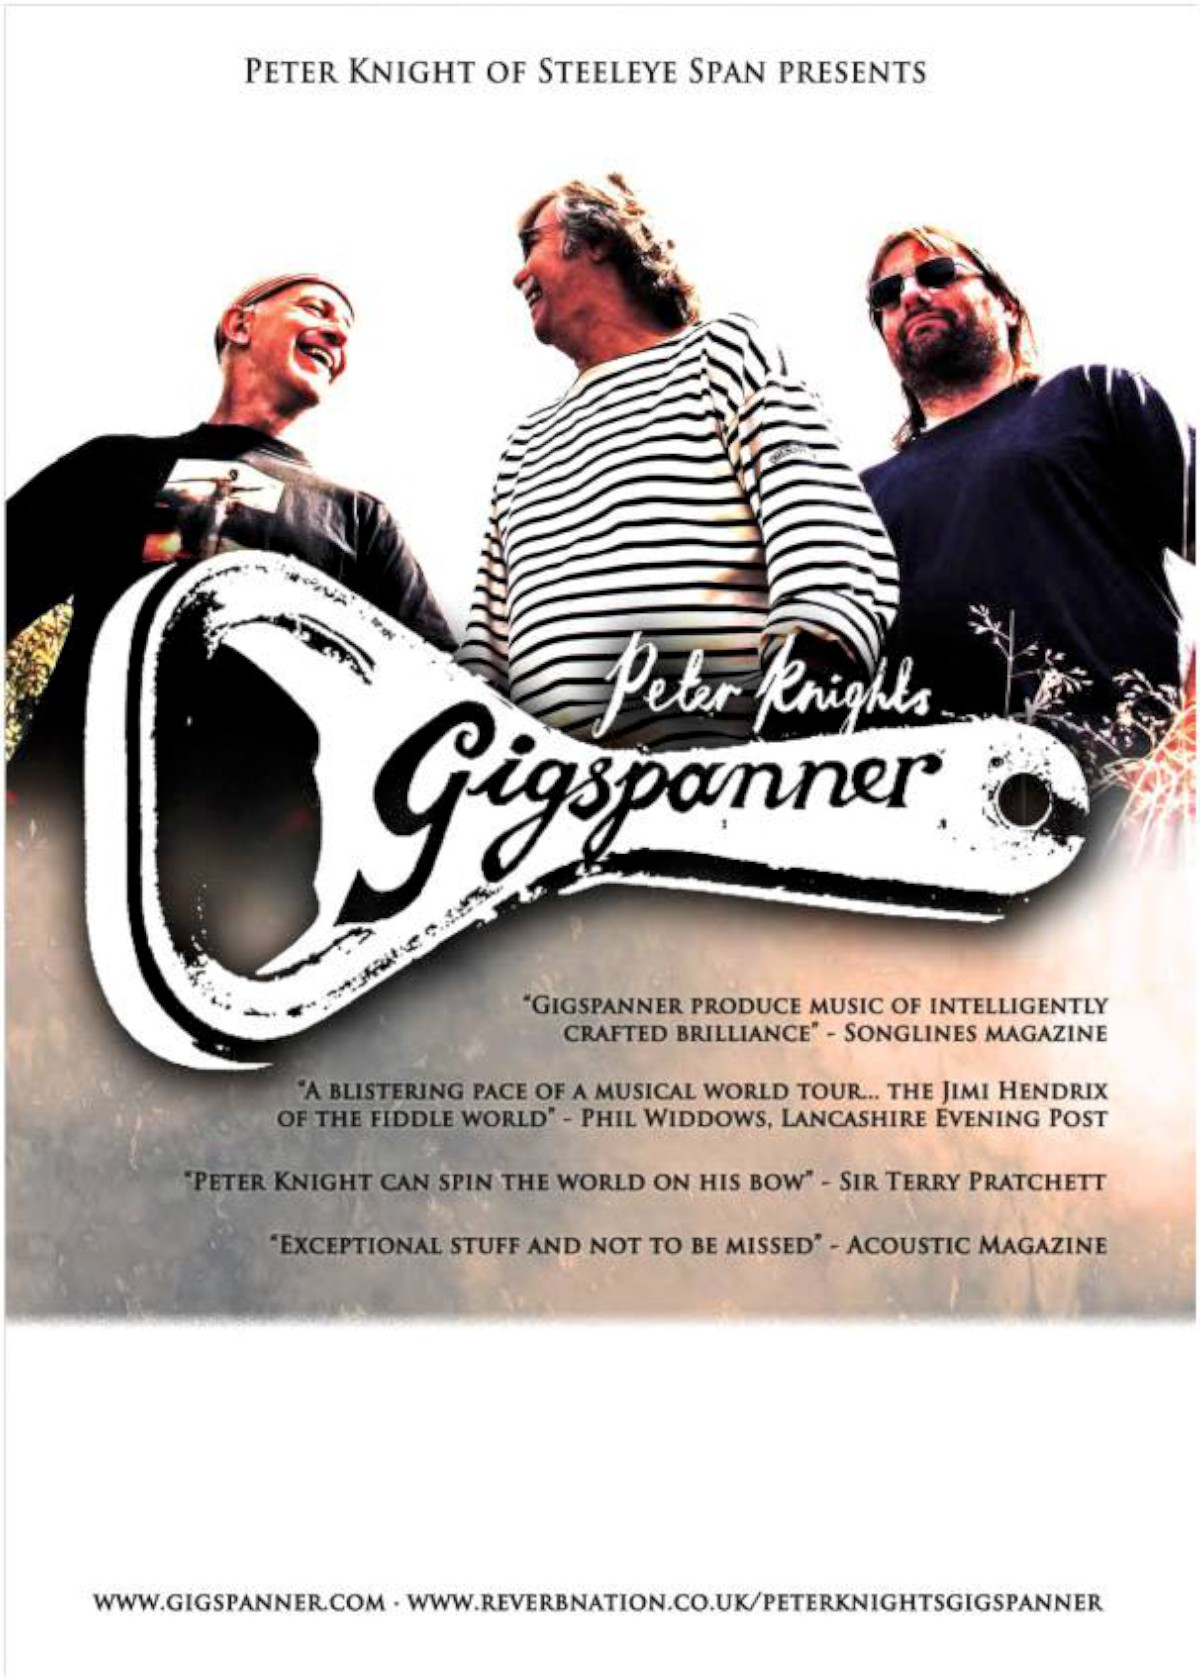 Party time: Peter Knight's Gigspanner